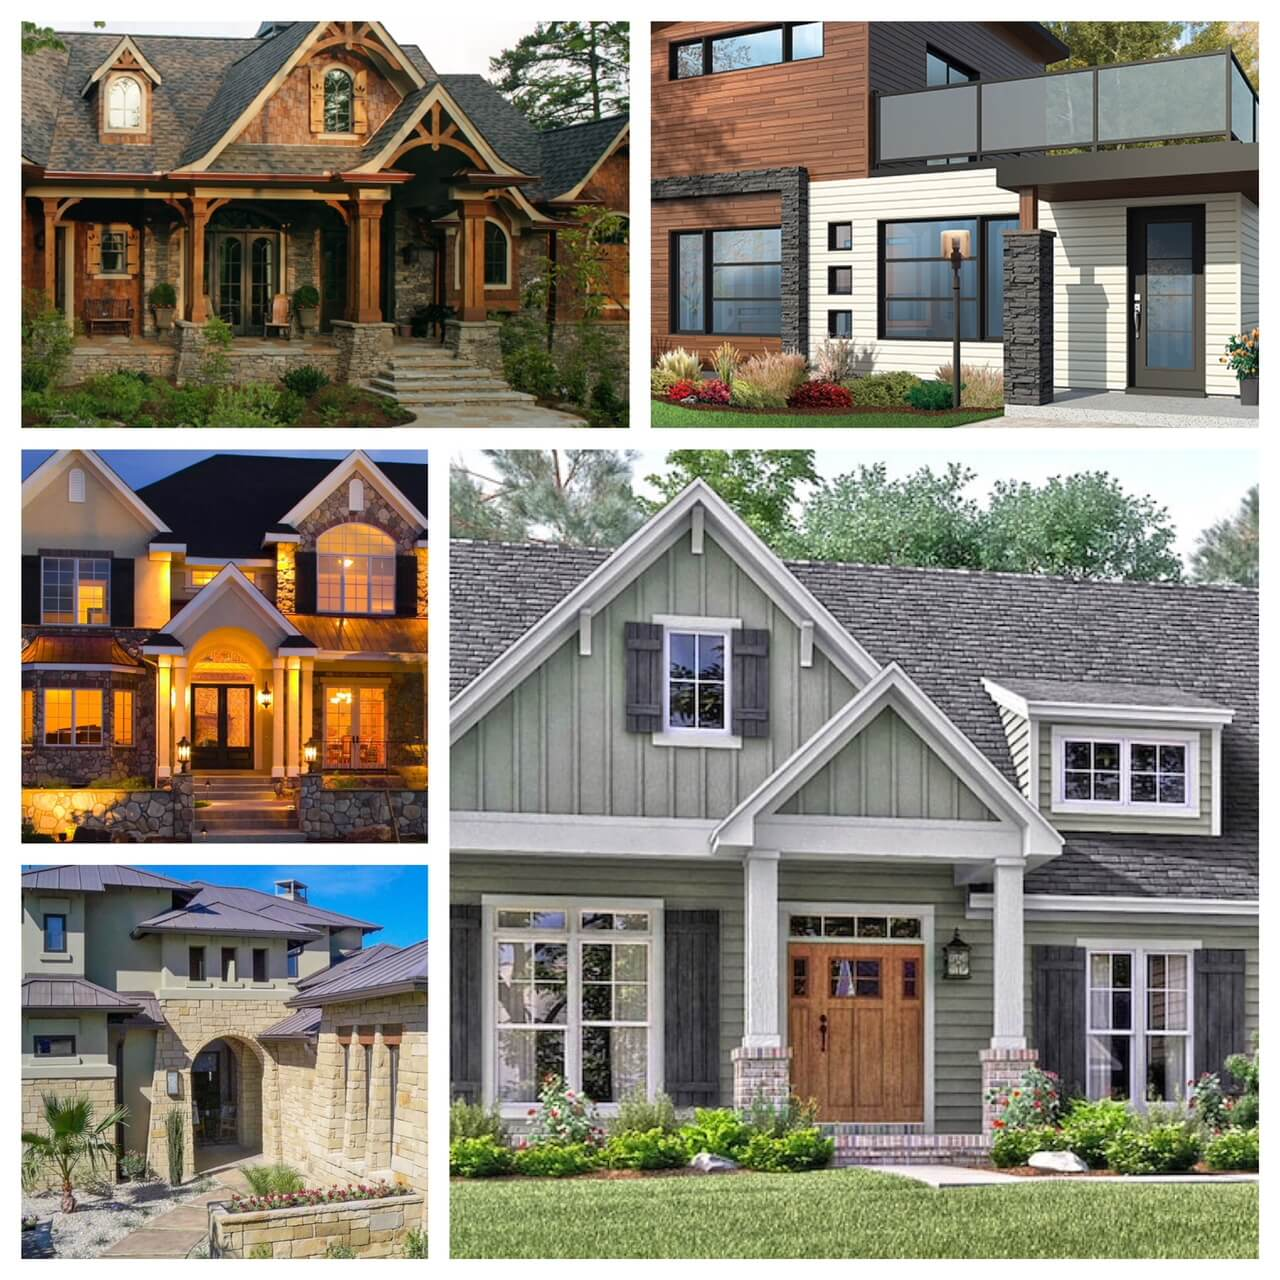 Collage of houses with different architectural styles from Modern to Craftsman to Country and Southwest.